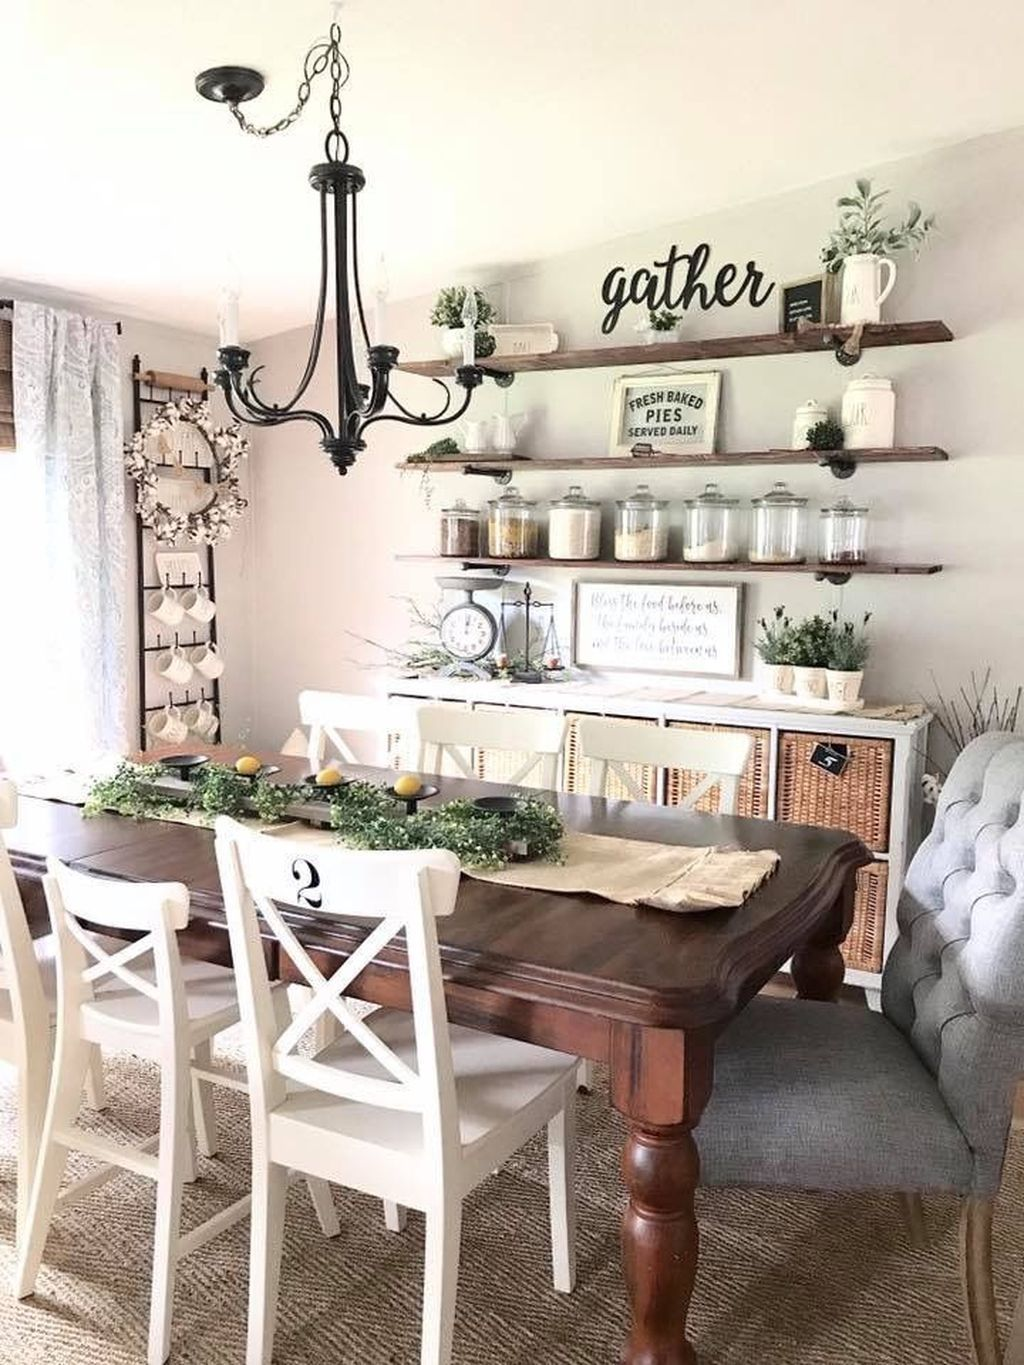 Country Wall Decor For Dining Room Internal Home Design Dining Room Decor Country Farmhouse Dining Rooms Decor Dining Room Small